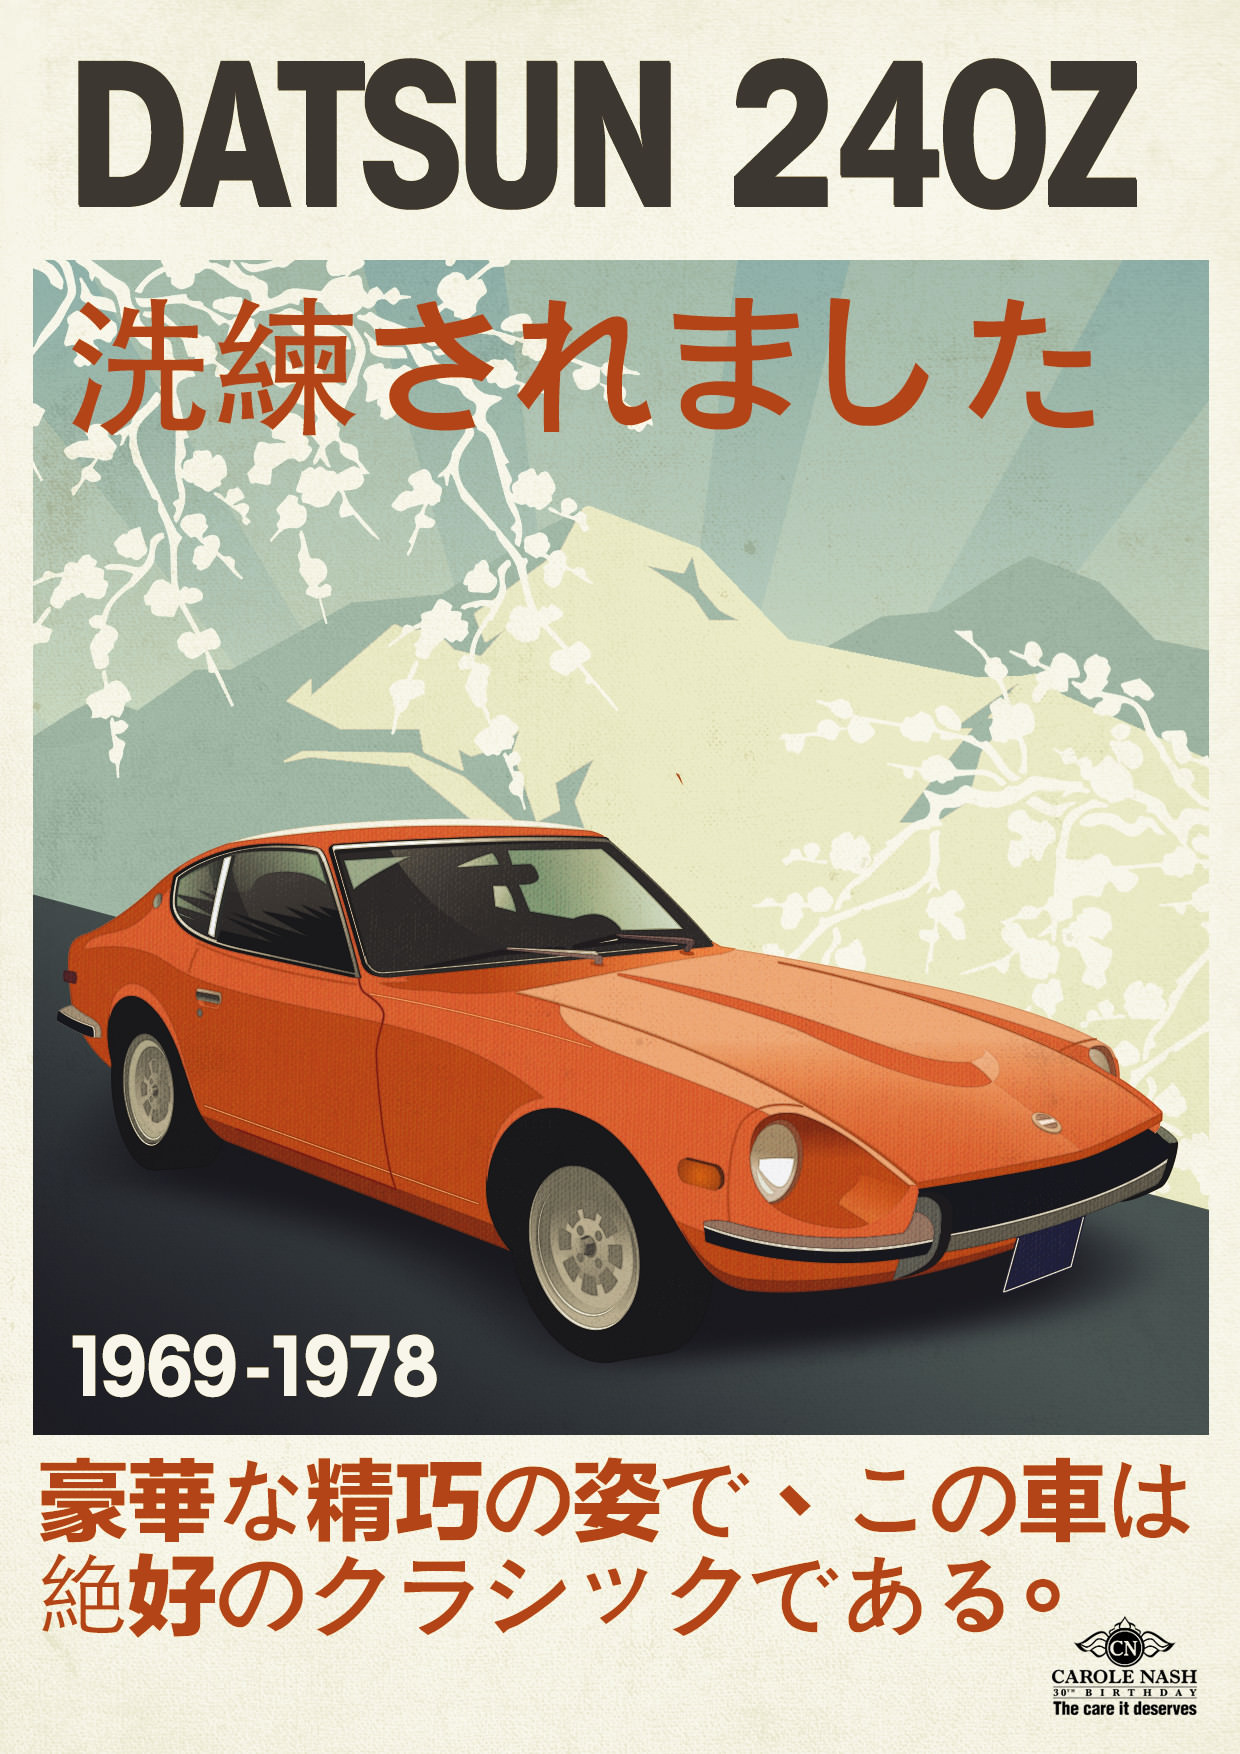 Datsun 240z Illustration/Poster